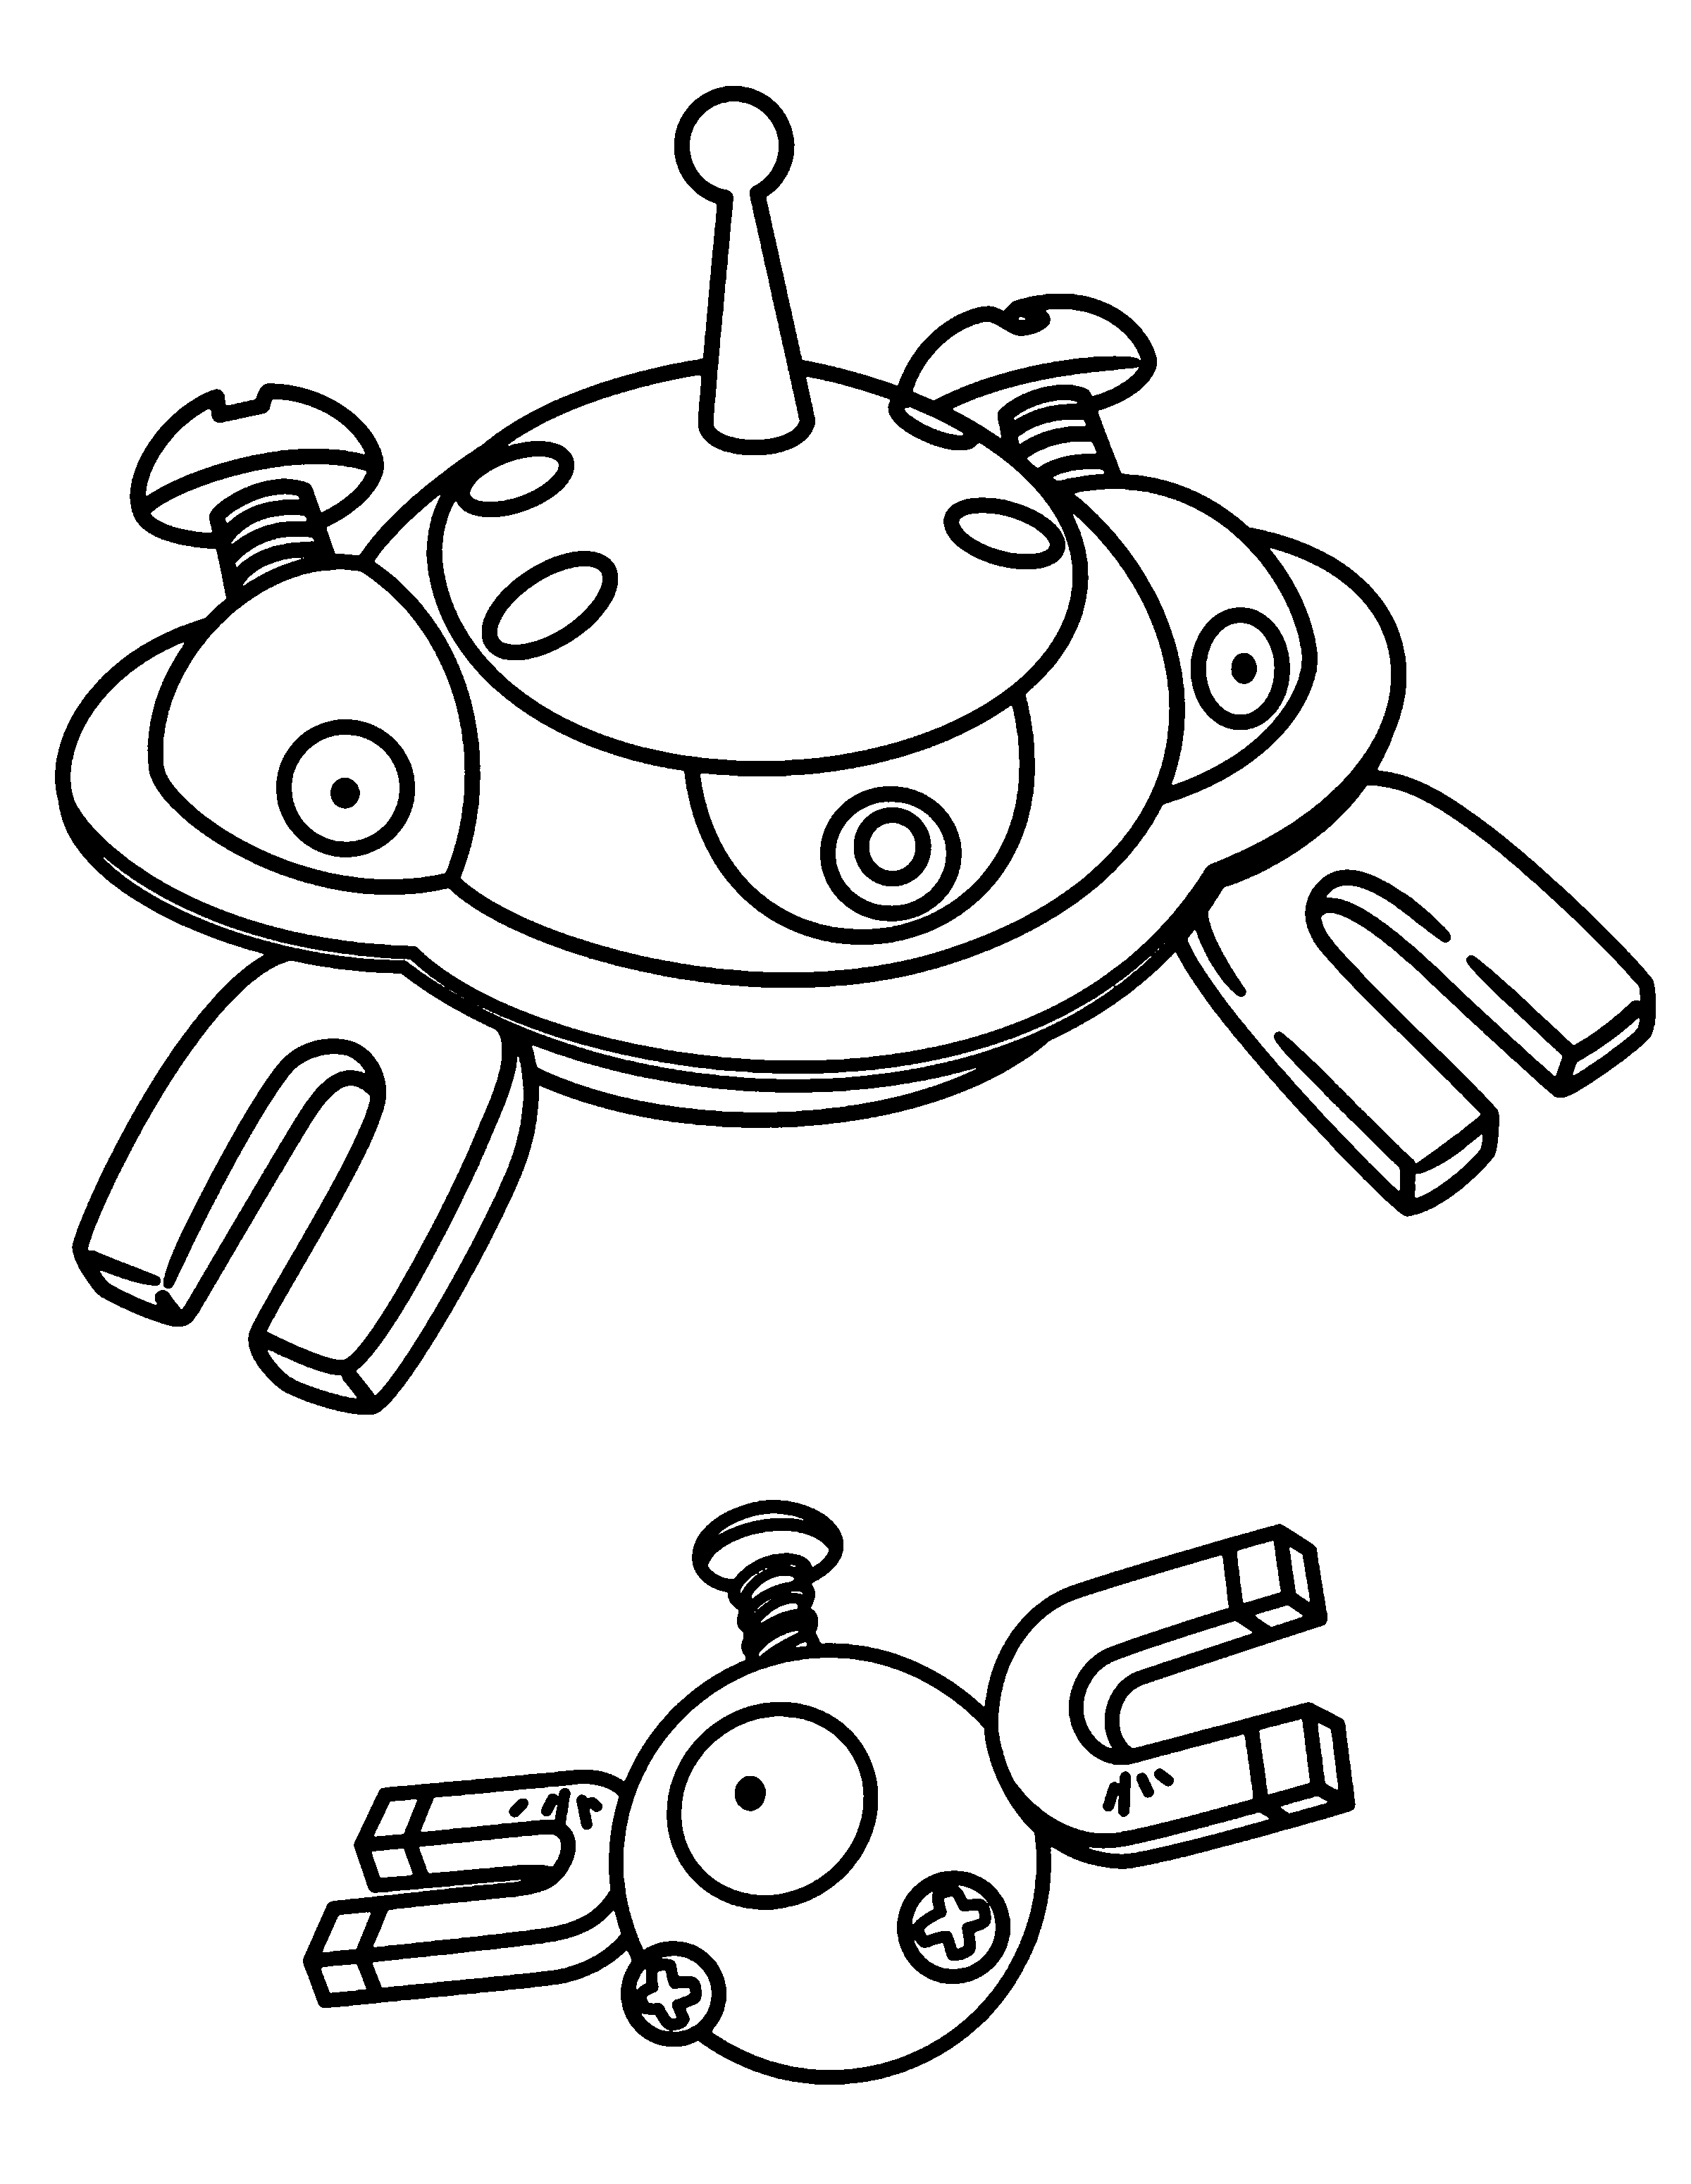 Pokemon coloring pages magnezone - Pokemon Diamond Pearl Coloring Pages Options For Image Print This Coloring Page